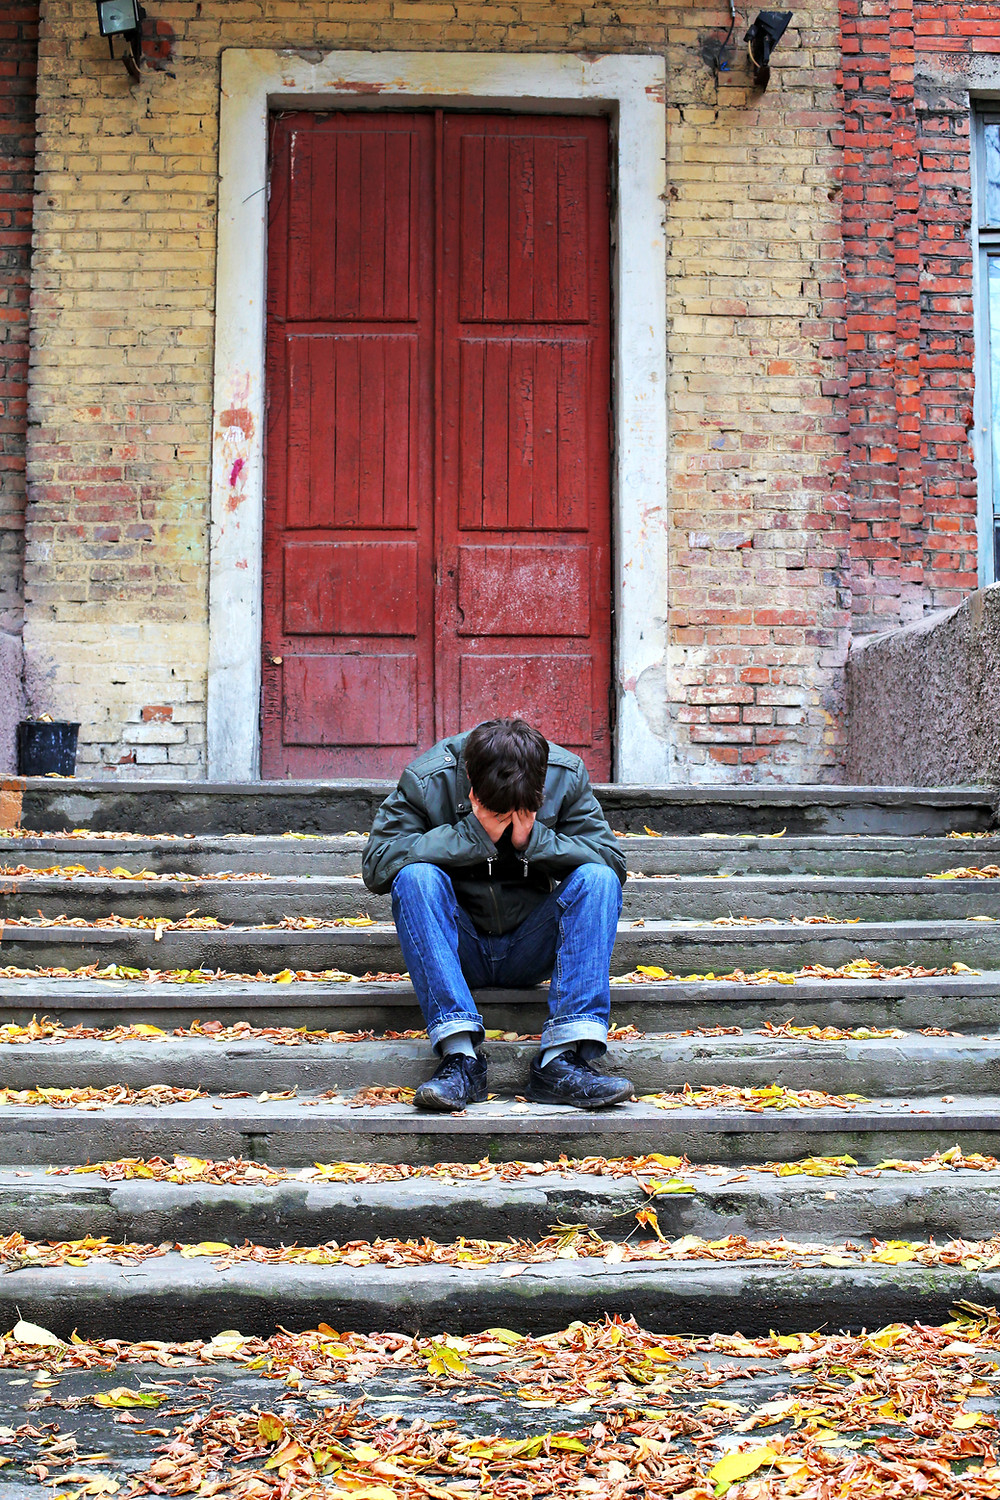 Ann Wrixon blog on foster youth homelessness